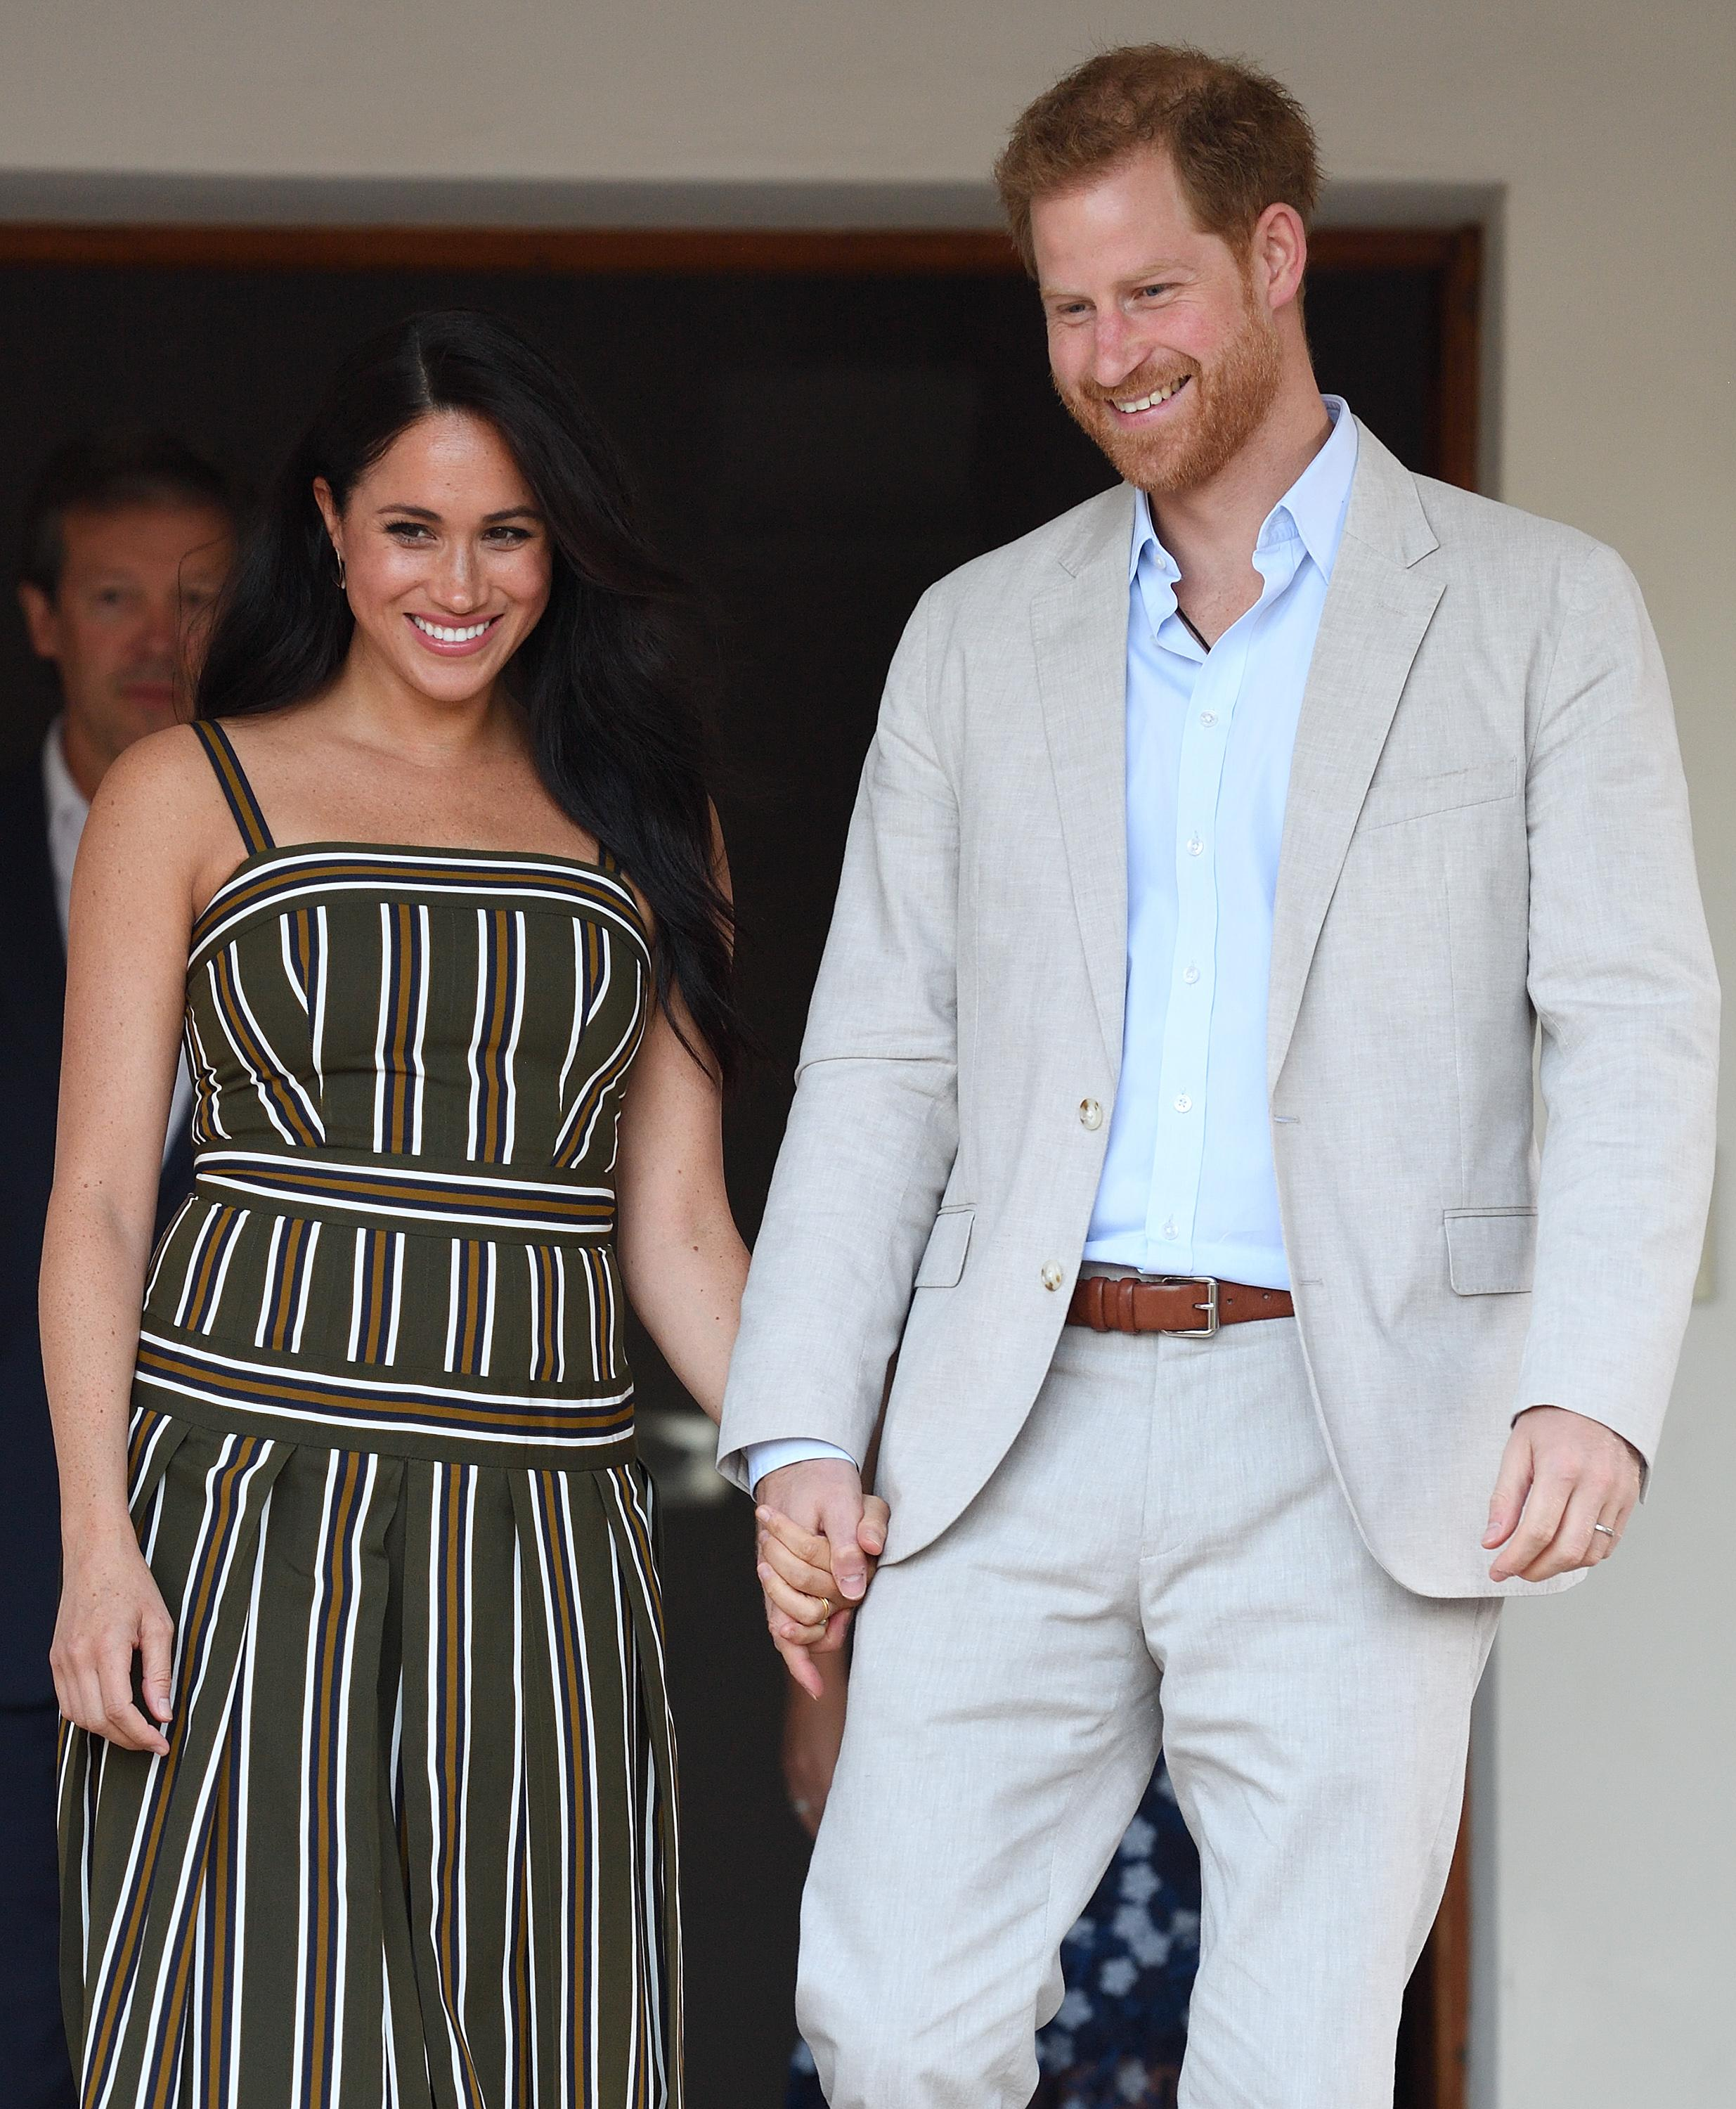 Prince Harry and Meghan Markle threaten legal action over paparazzi photos of her hiking with Archie: 'There are serious safety concerns'